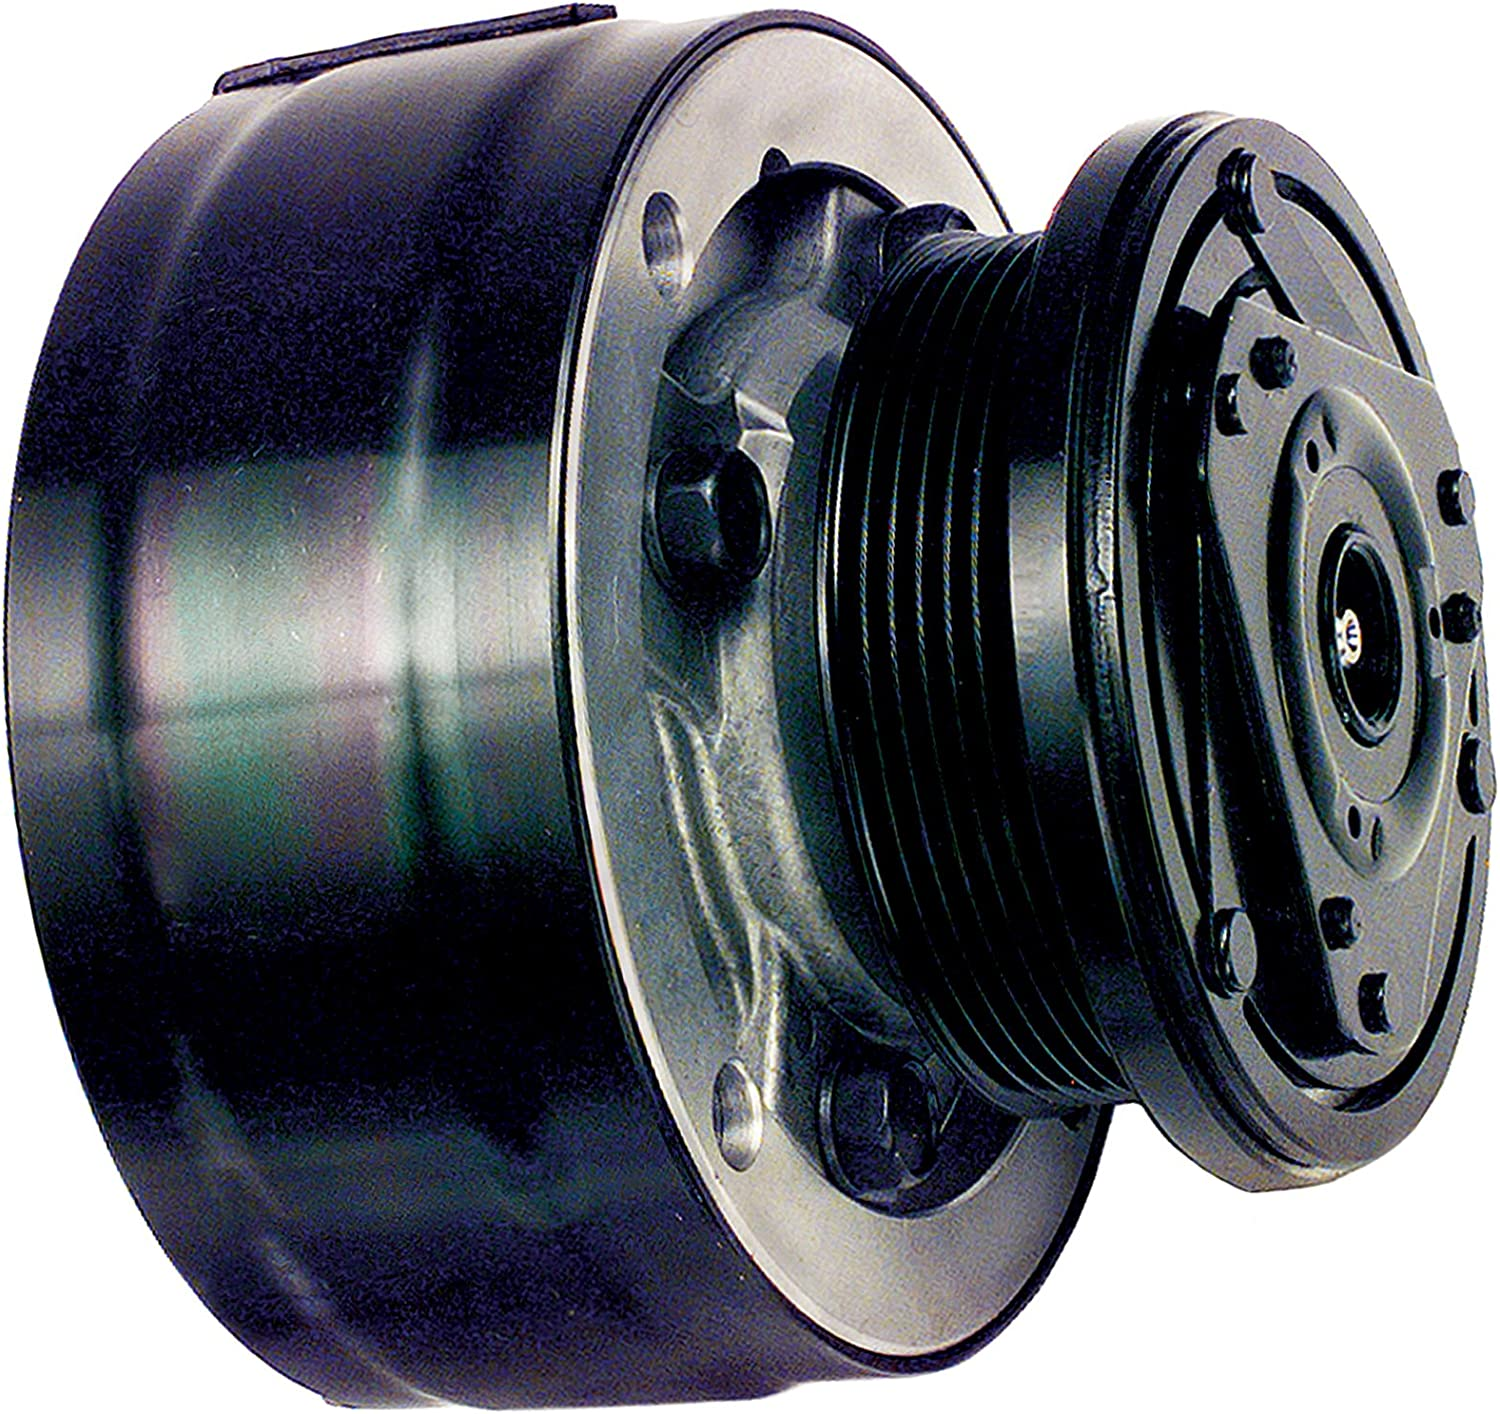 ACDelco 15-20189 GM Original Equipment Air Conditioning Compressor and Clutch Assembly